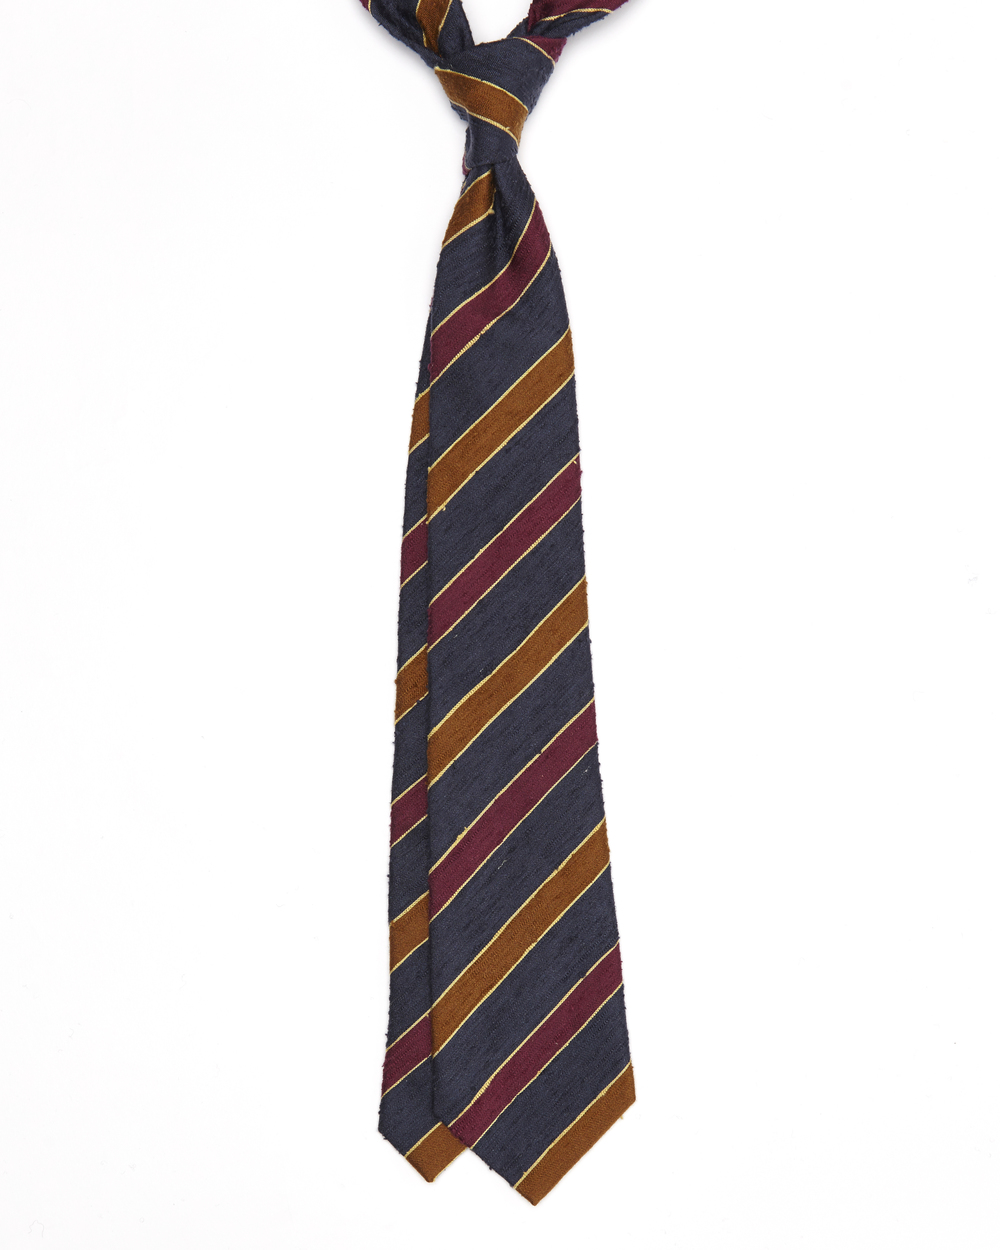 The Leonard Tie has a lovely slub texture accredited to the burutti silk quality, which would look great on your 'casual' looks  like a chambray shirt and cardigan for an example. The blue, burgundy and burnt orange stripes will certainly lift the overall appearance and even compliment other colours he (or she) may be wearing such as a burgundy fedora. Click on photo for more information on this tie.